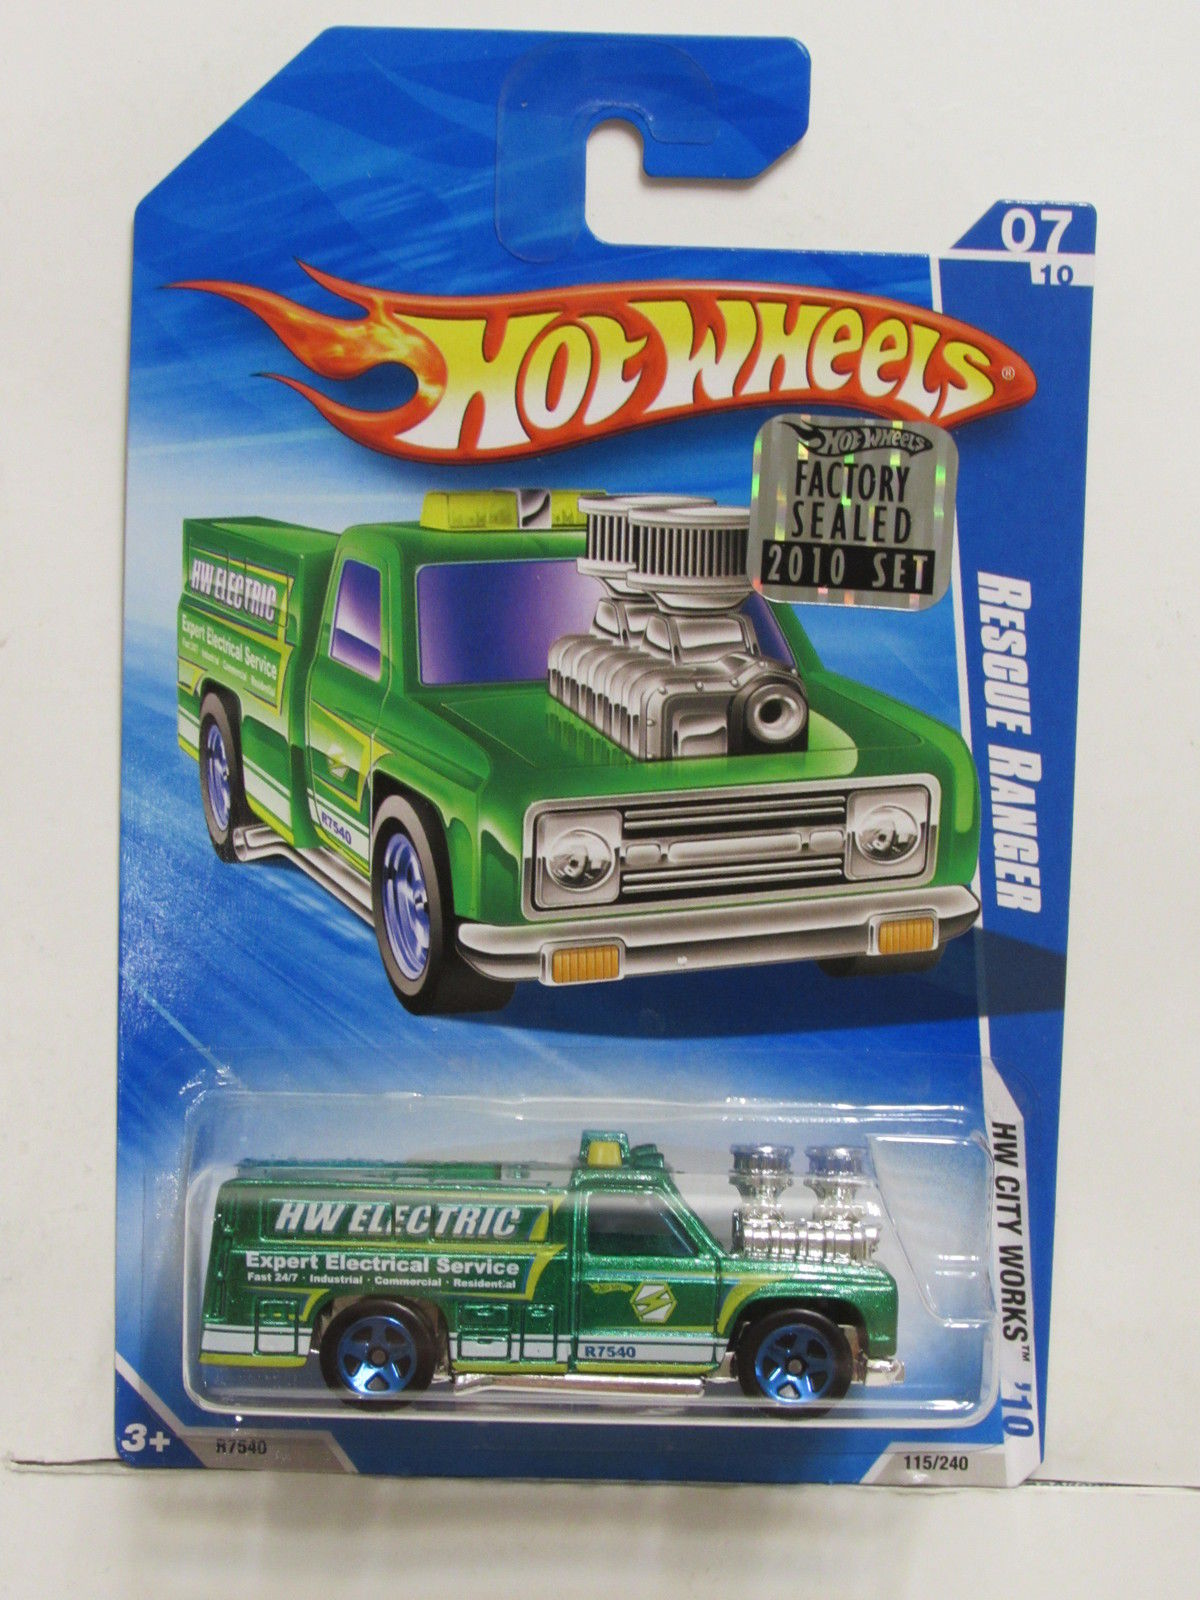 HOT WHEELS 2010 HW CITY WORKS RESCUE RANGER GREEN FACTORY SEALED